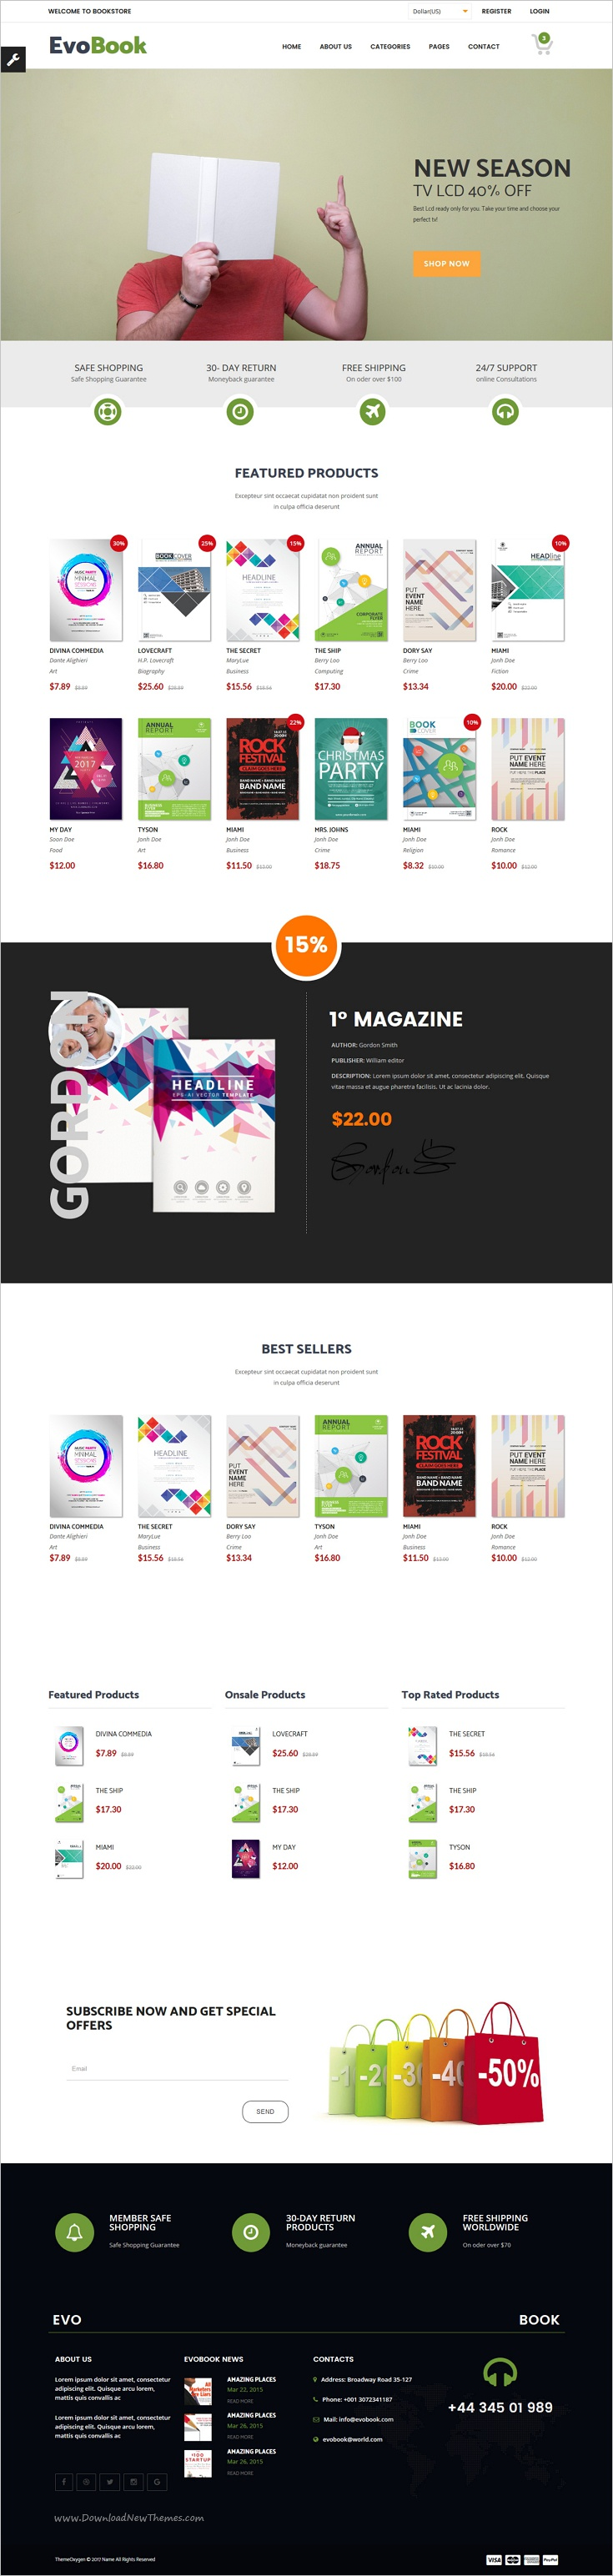 Evobook Multi Purpose Ecommerce Template Ecommerce Template And